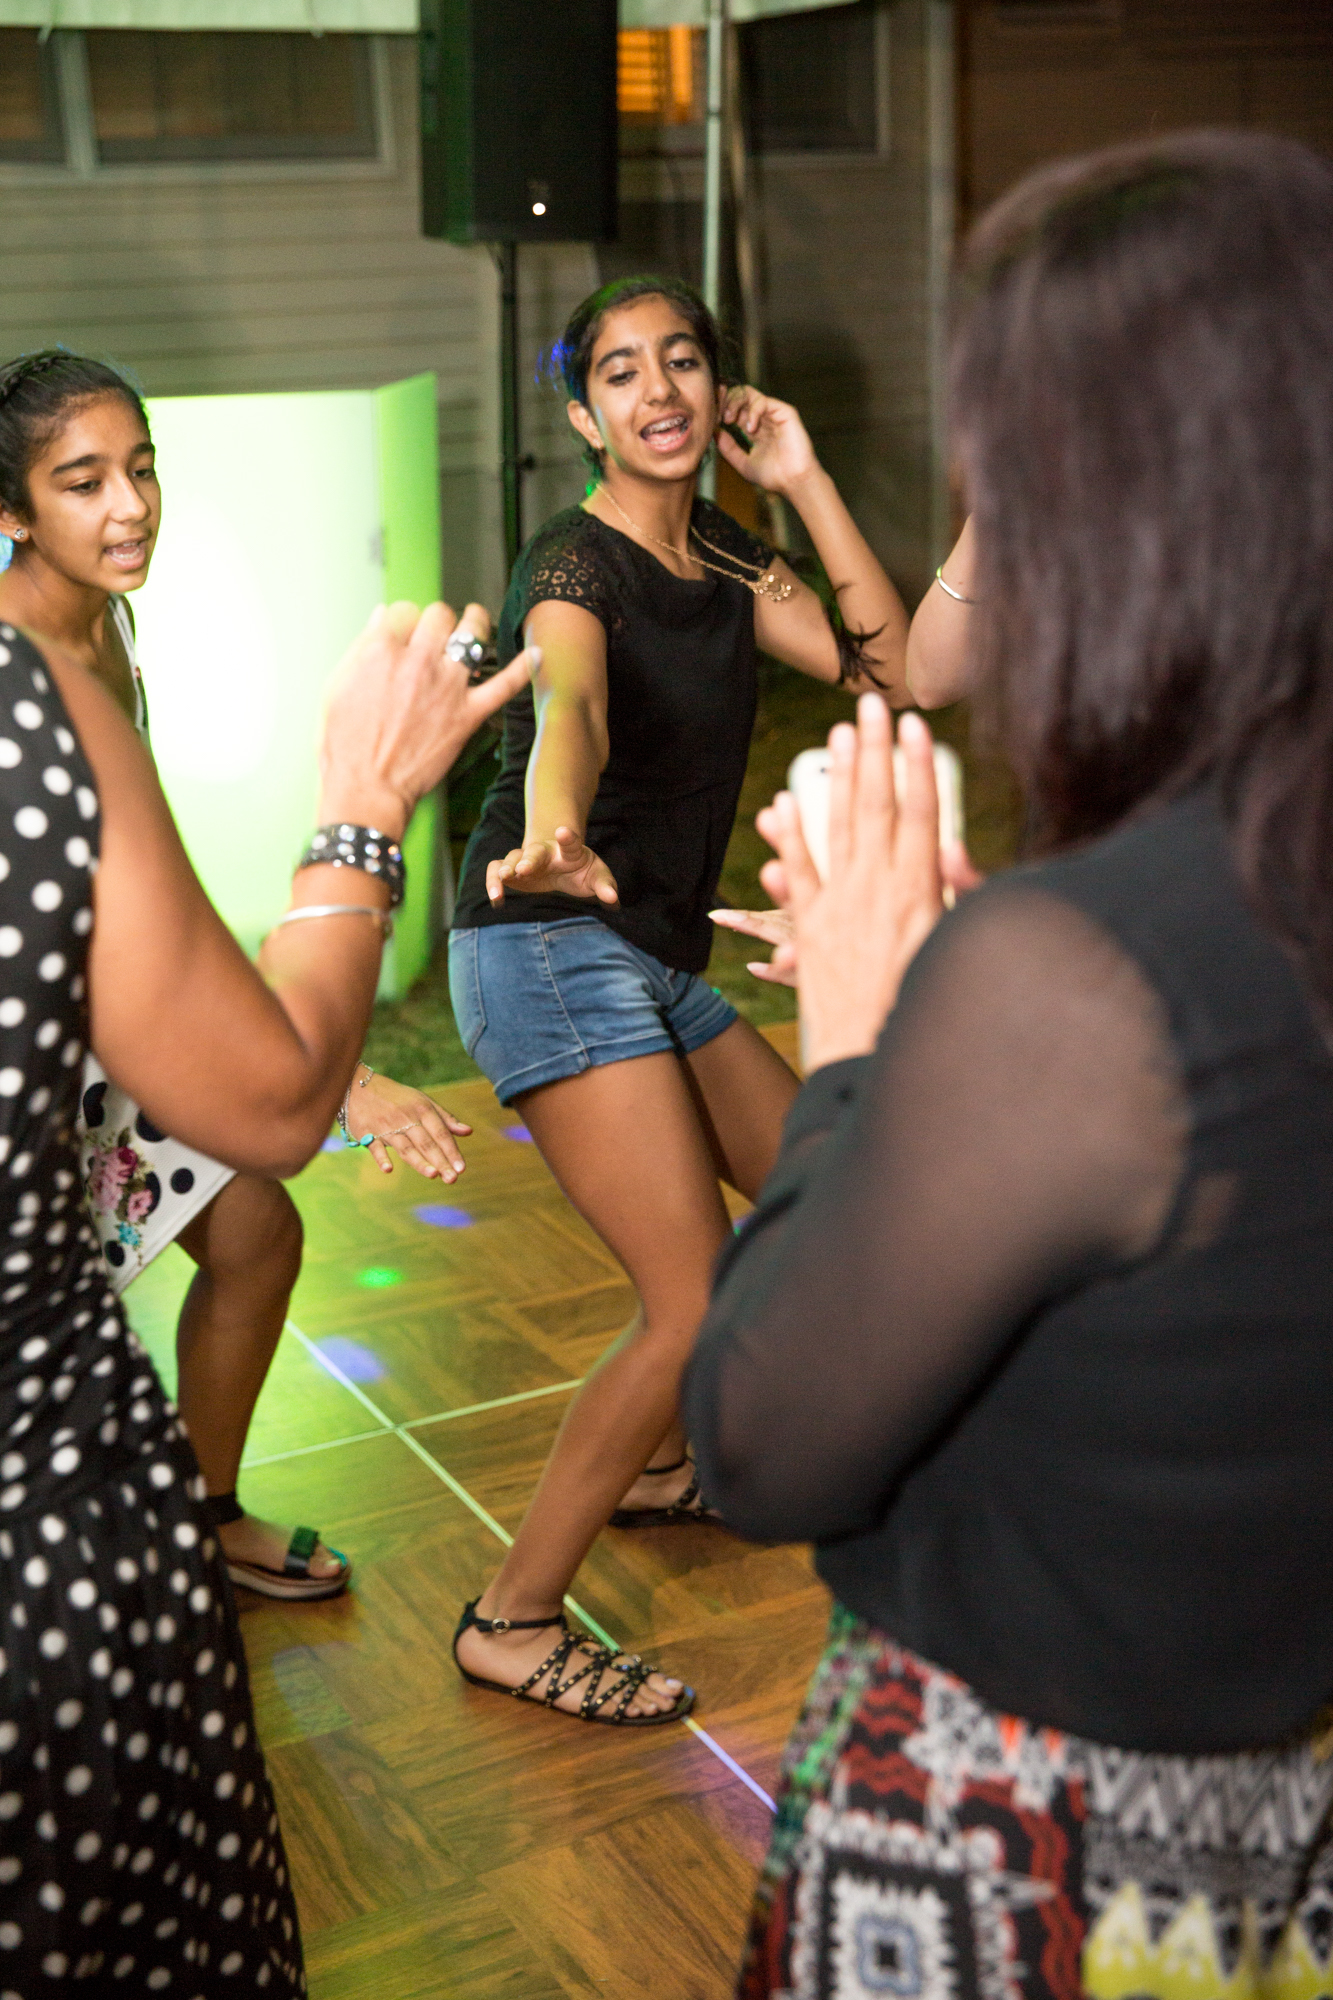 33-William Hendra Photography Singh Graduation Party.jpg